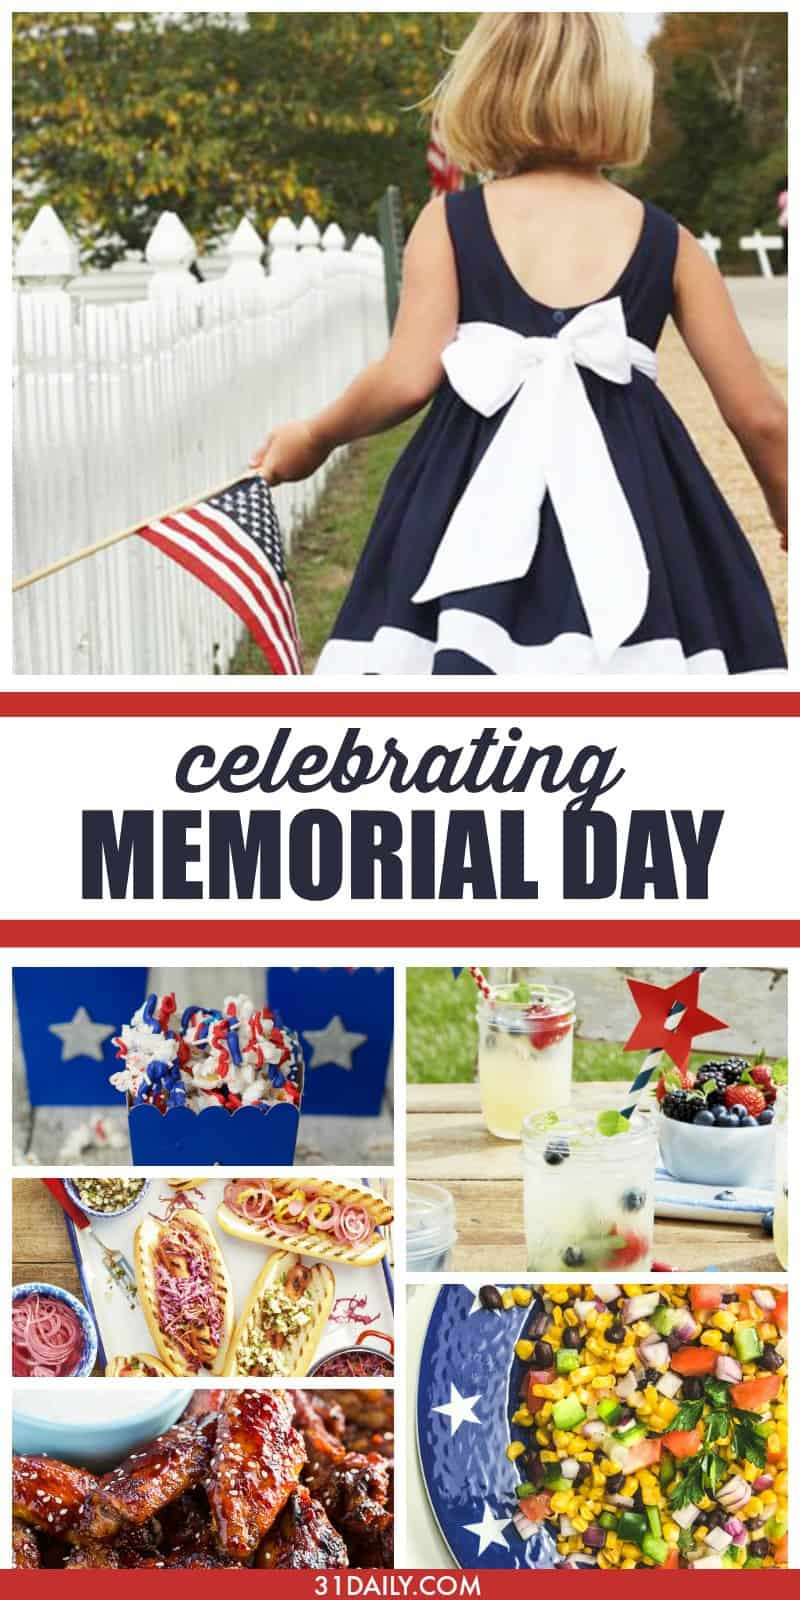 images of Memorial Day food ideas